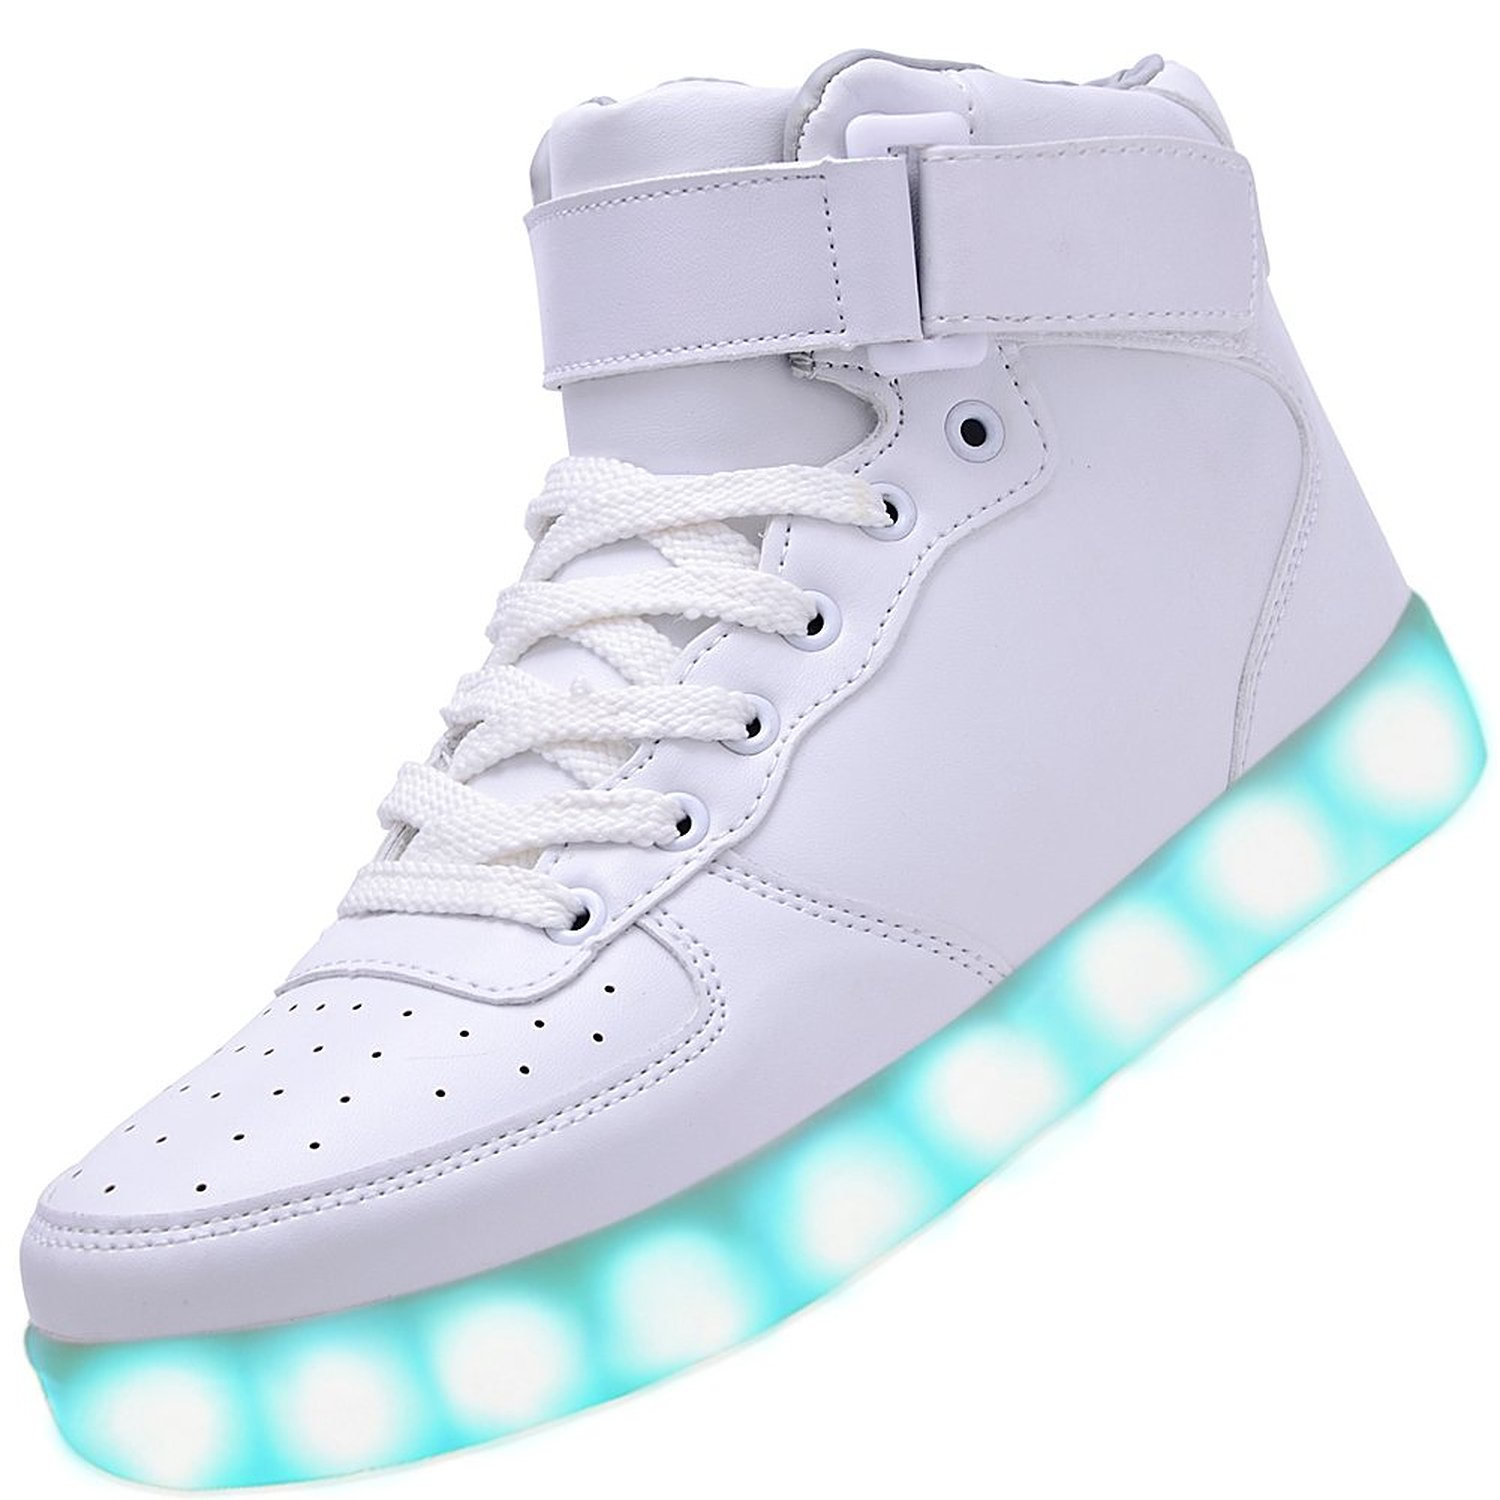 Light Up Shoes – Definitive Buying guide – Top 10 LED Light Up Shoes c342db6ce7e1